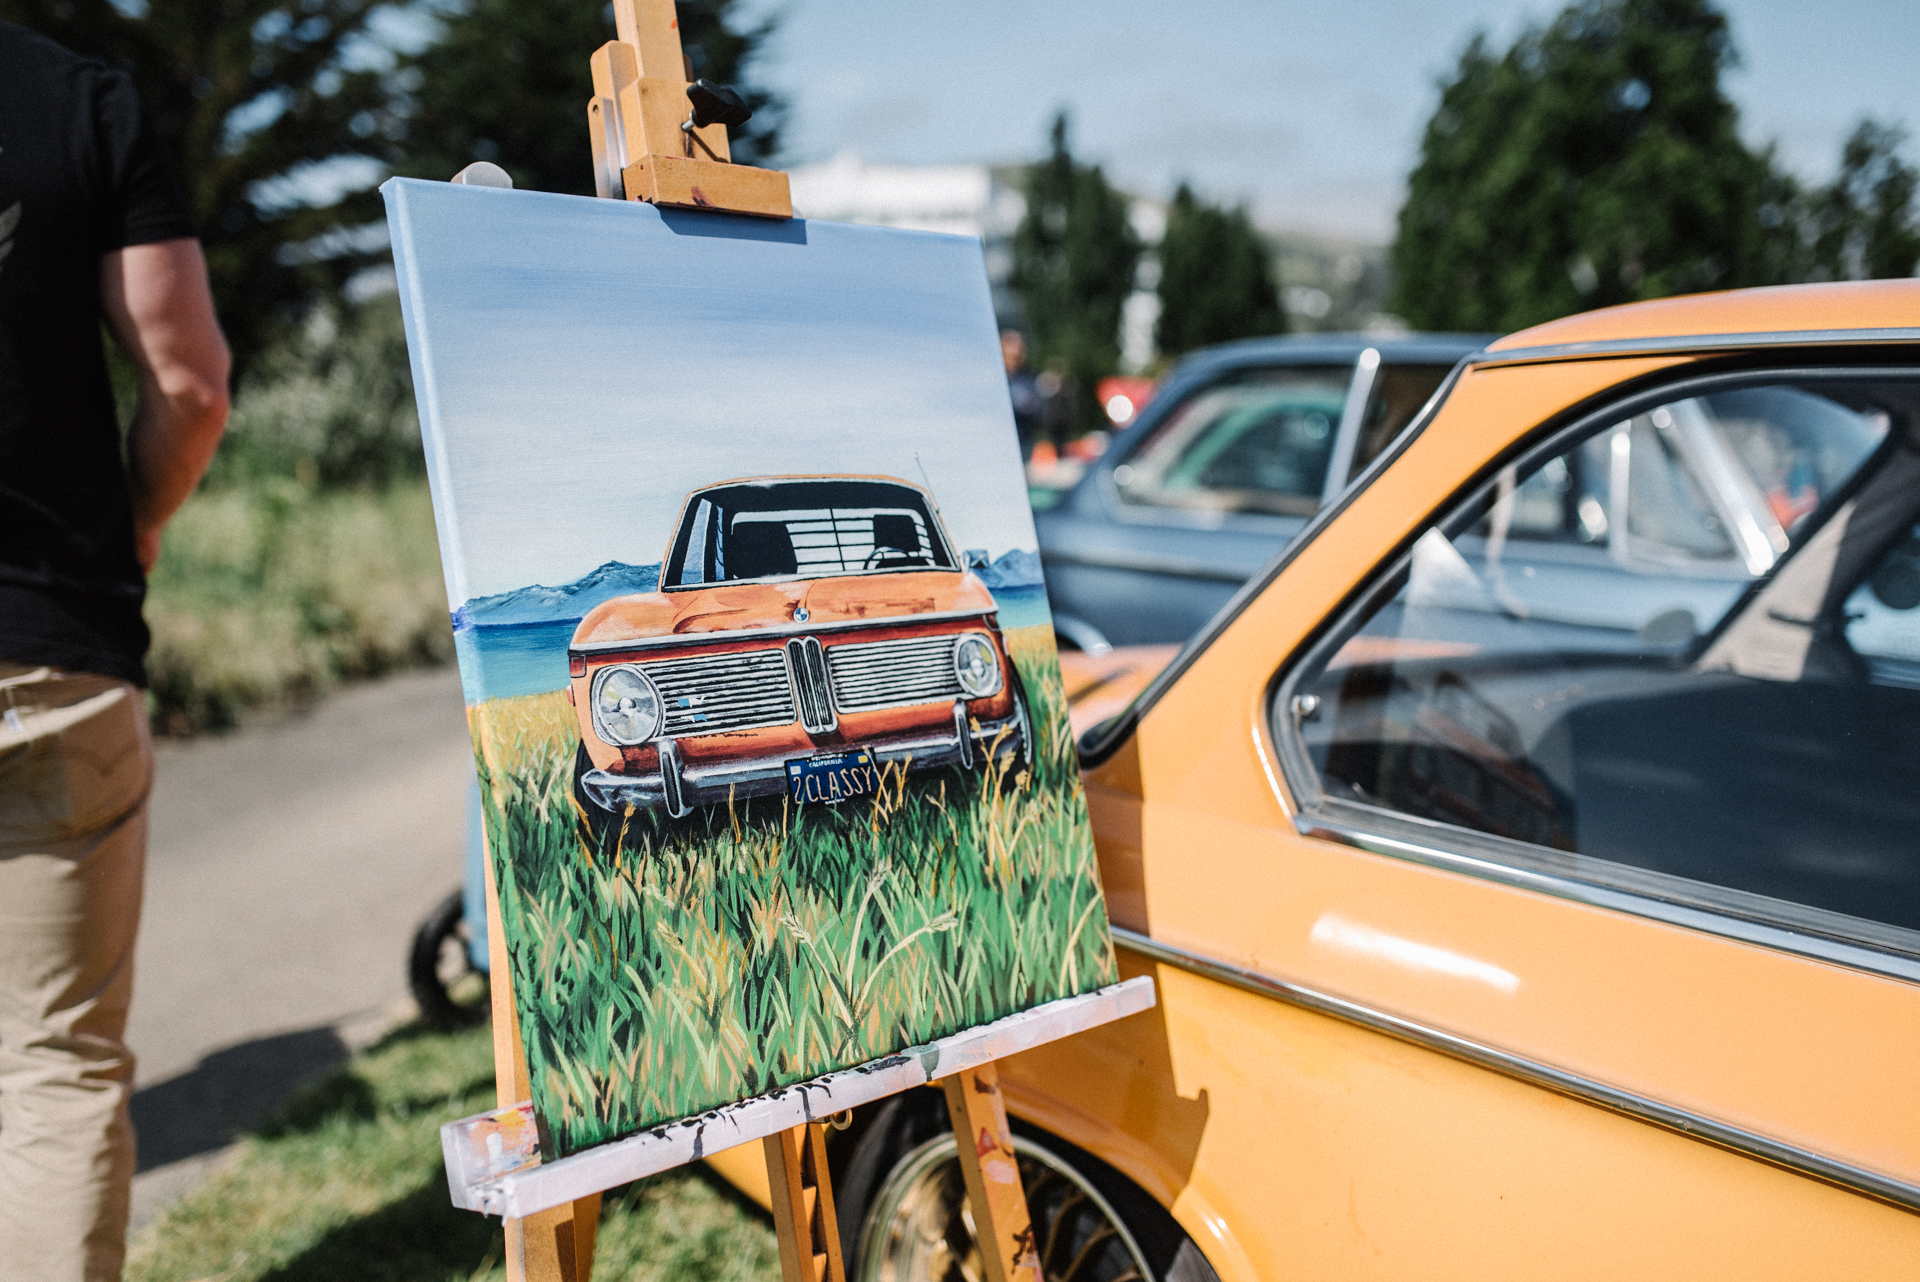 Max (@coastalcrush) brought out his 02s, Crusty and Vera. Justin Estes (@colorfreak_art) painted custom portraits of each car to display.